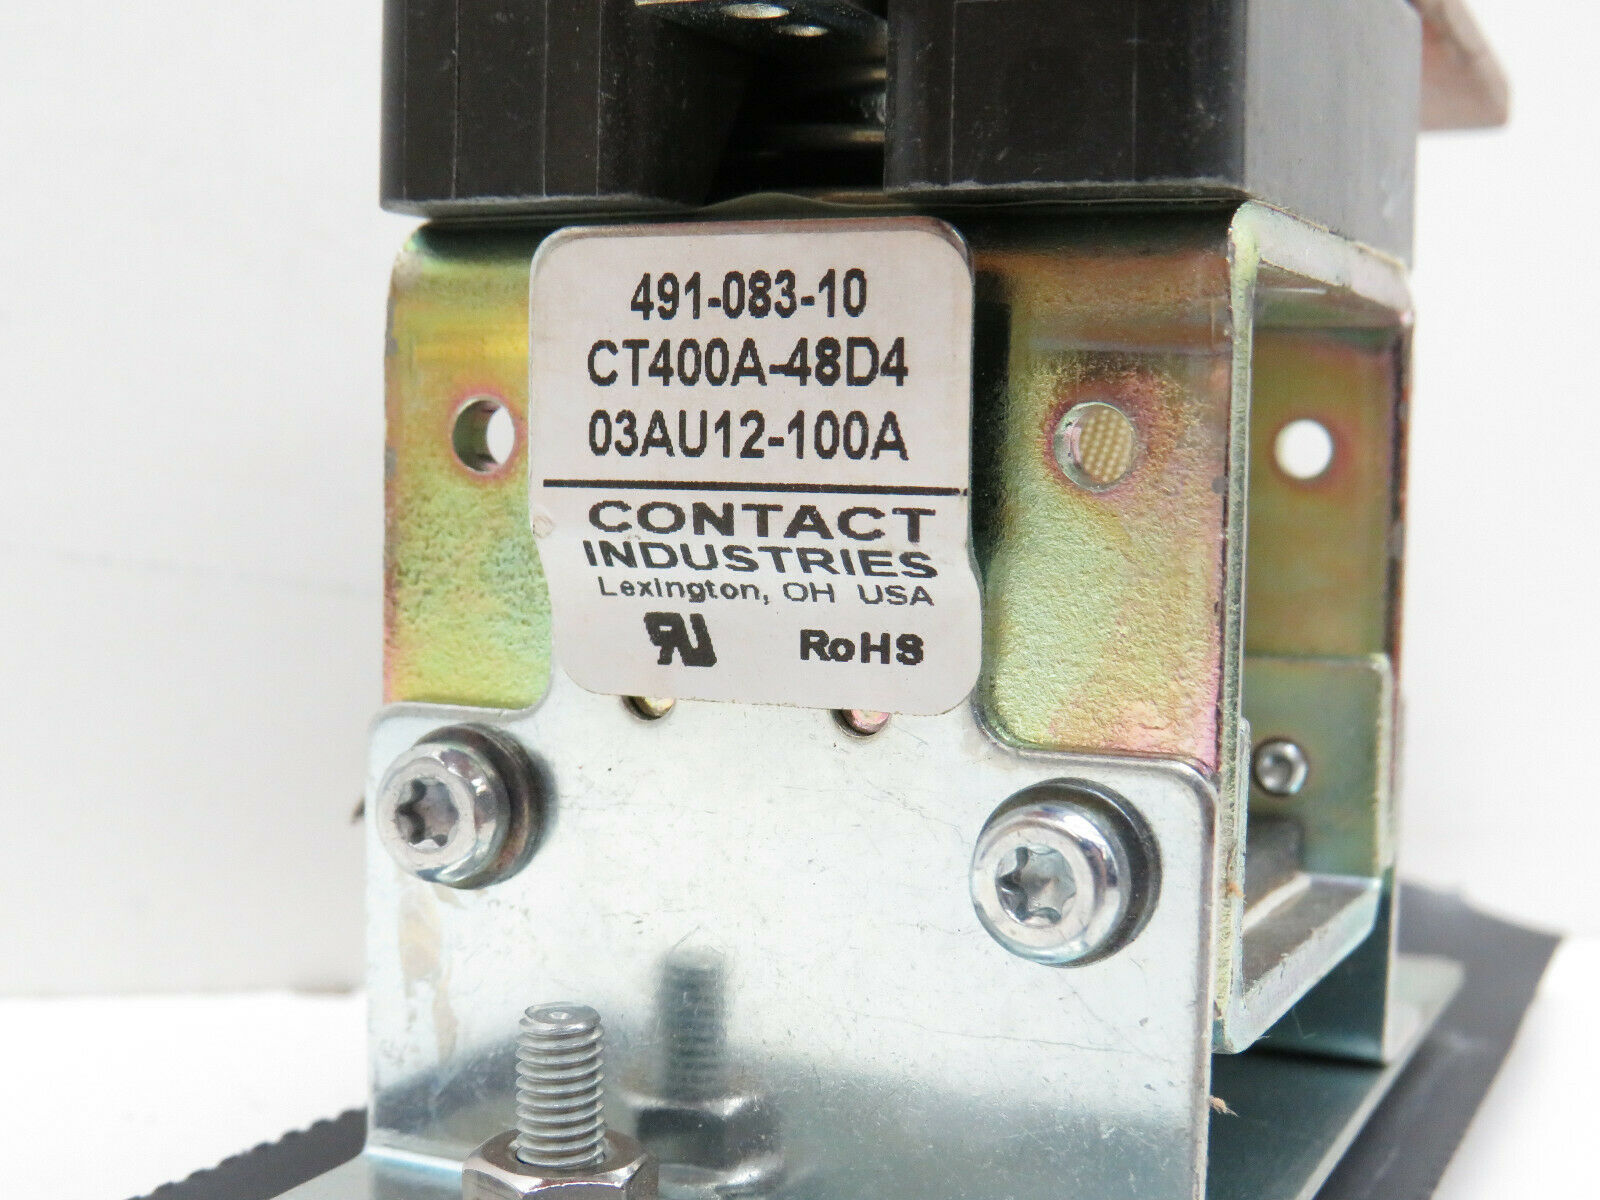 72 VDC Contactor Relay NEW Contact Industries CT400A-48C5  400 Amp at 6